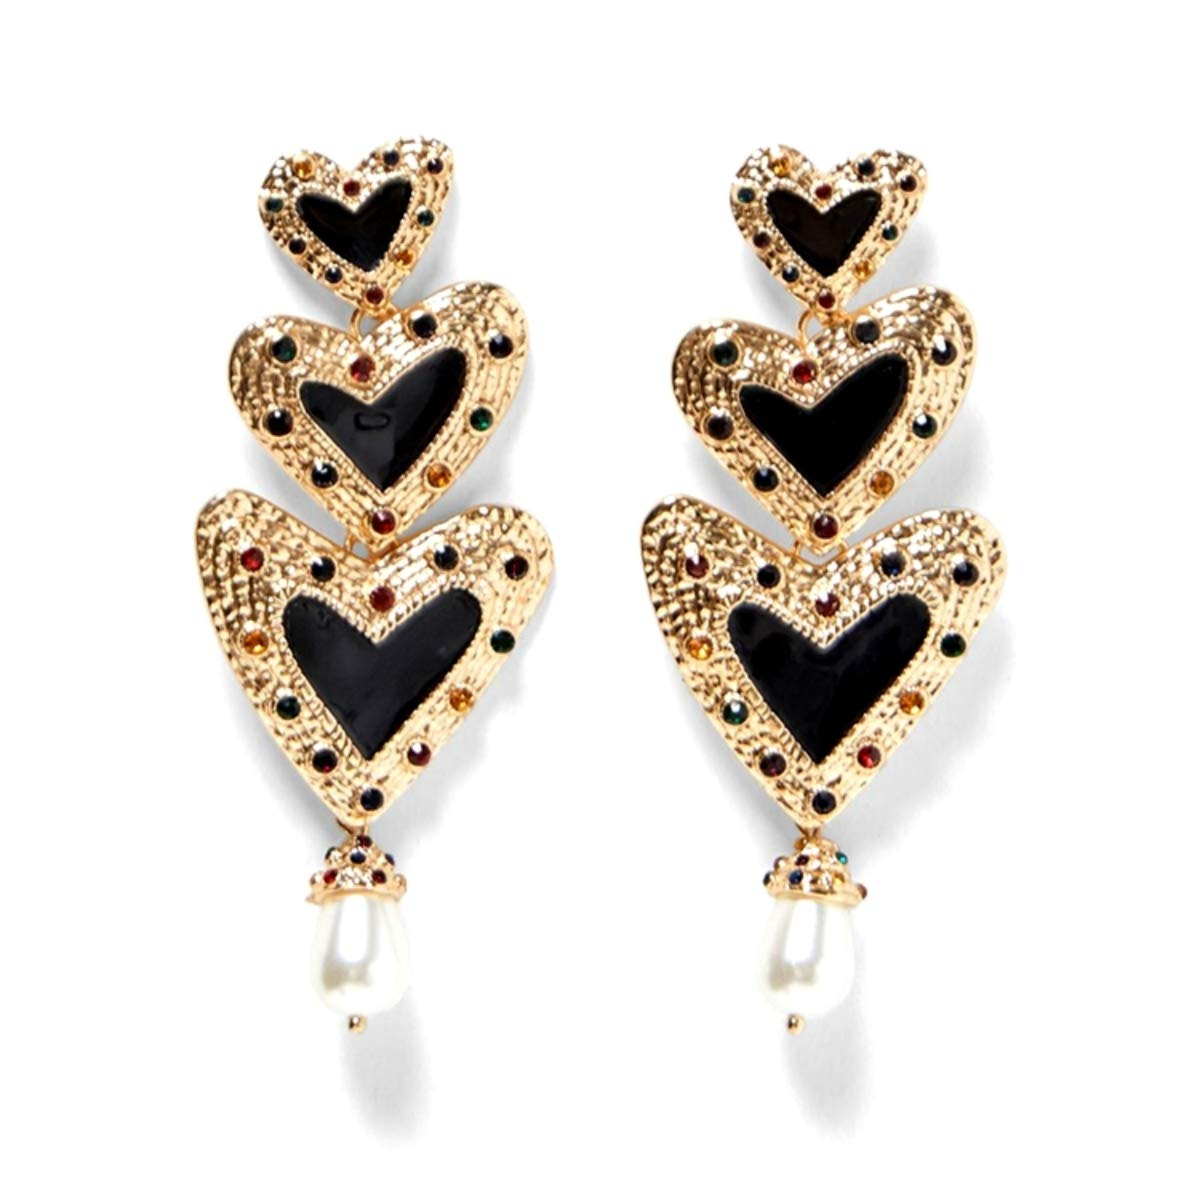 d1ce025ee Amazon.com: Global Huntress Sophisticated Long Triple Hearts in Gold Tone  Adorned with Multi Colored Stones Dangle Drop Earrings with Rhinestones:  Jewelry